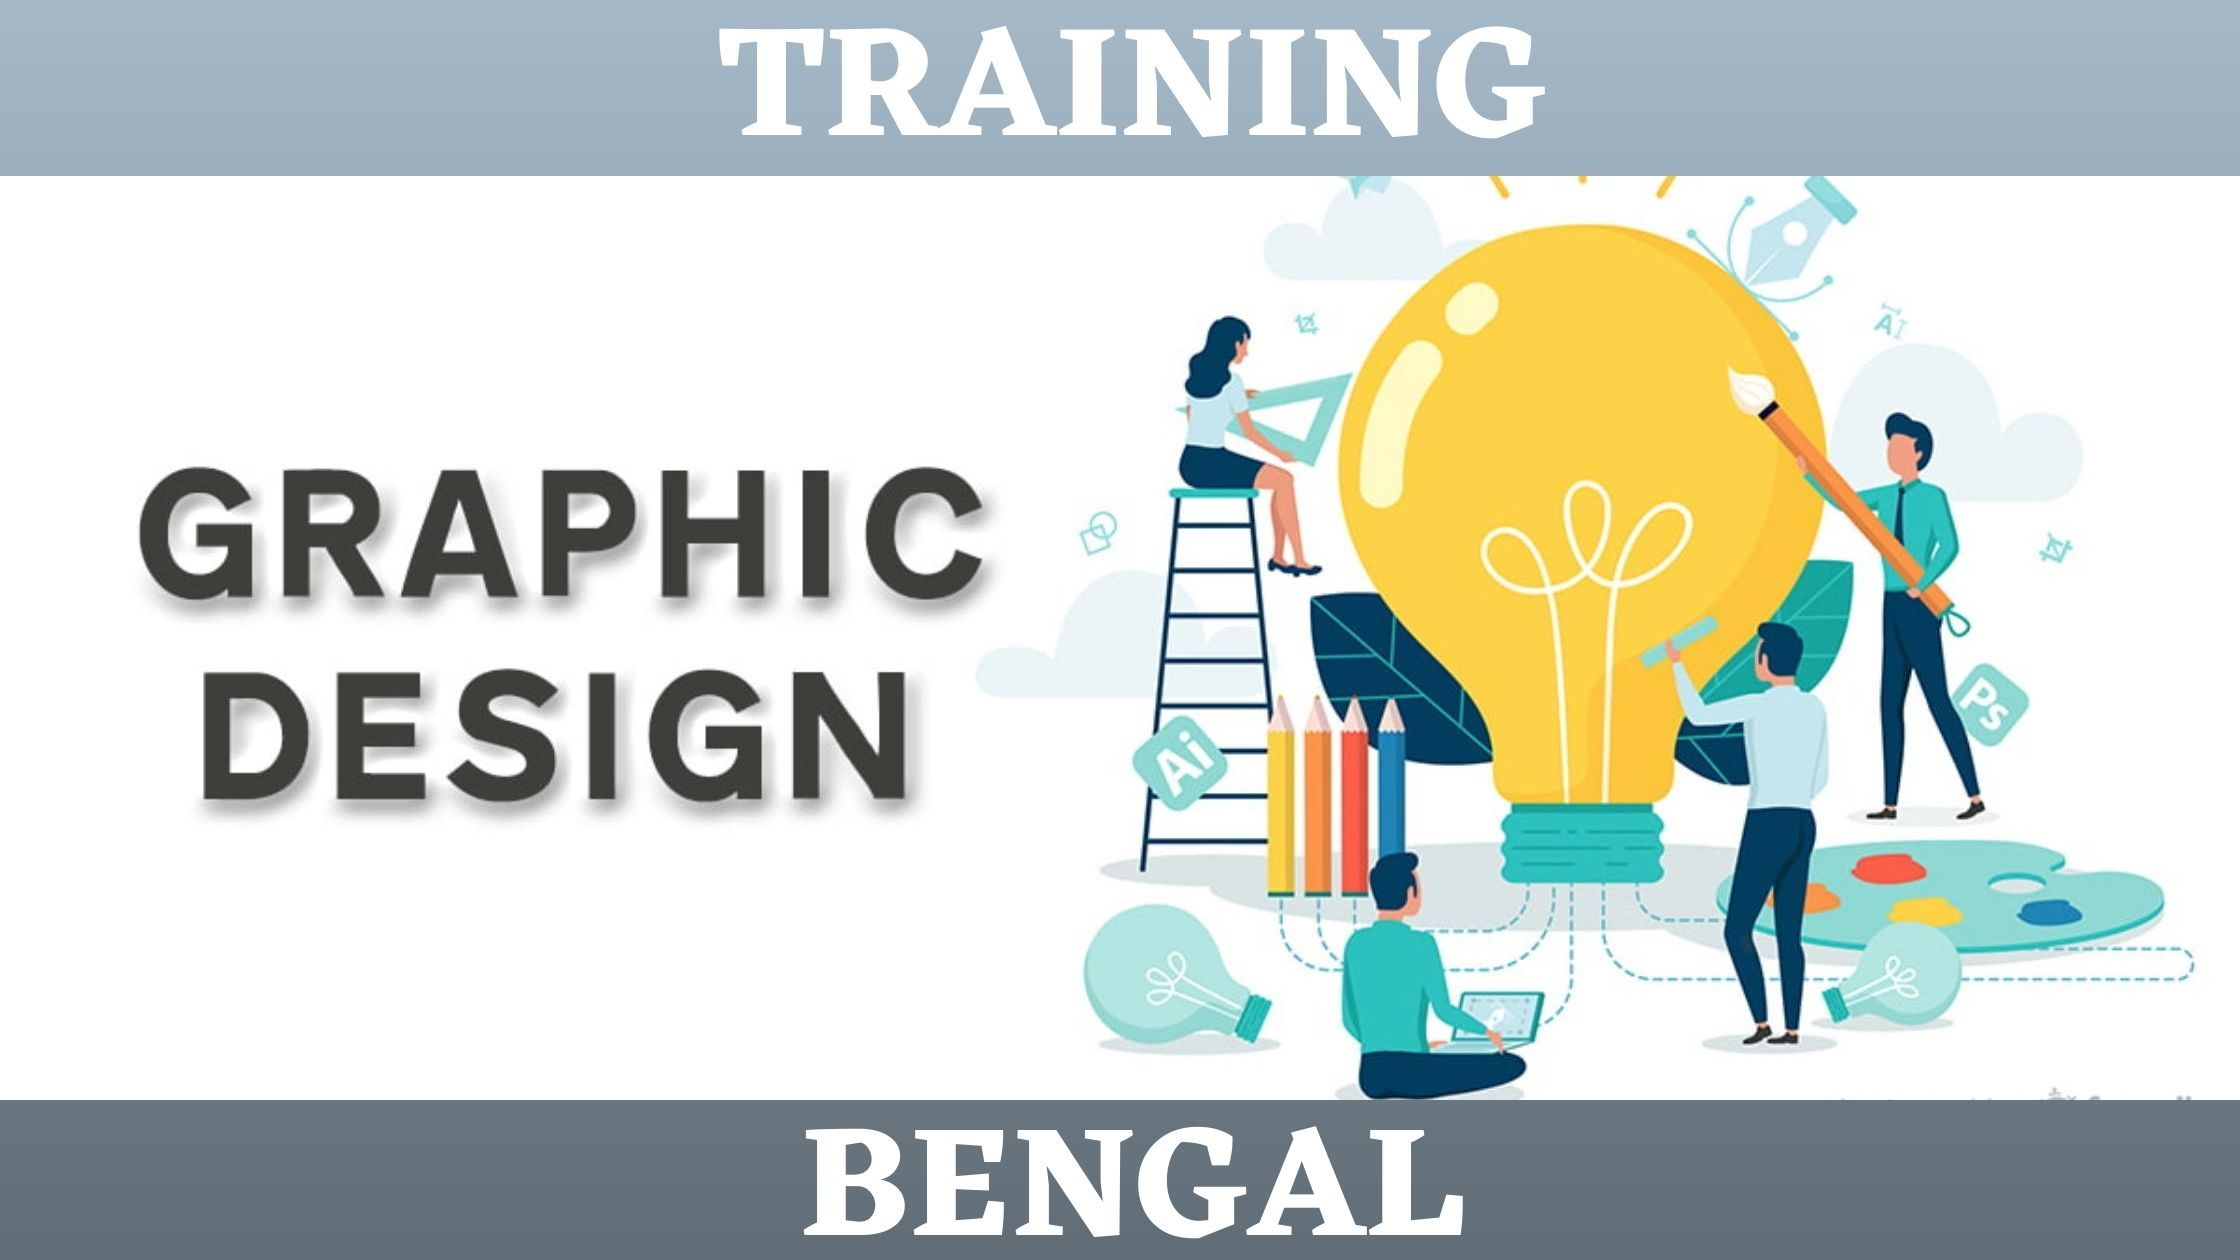 graphic_design_training_in_bengal-background.jpeg